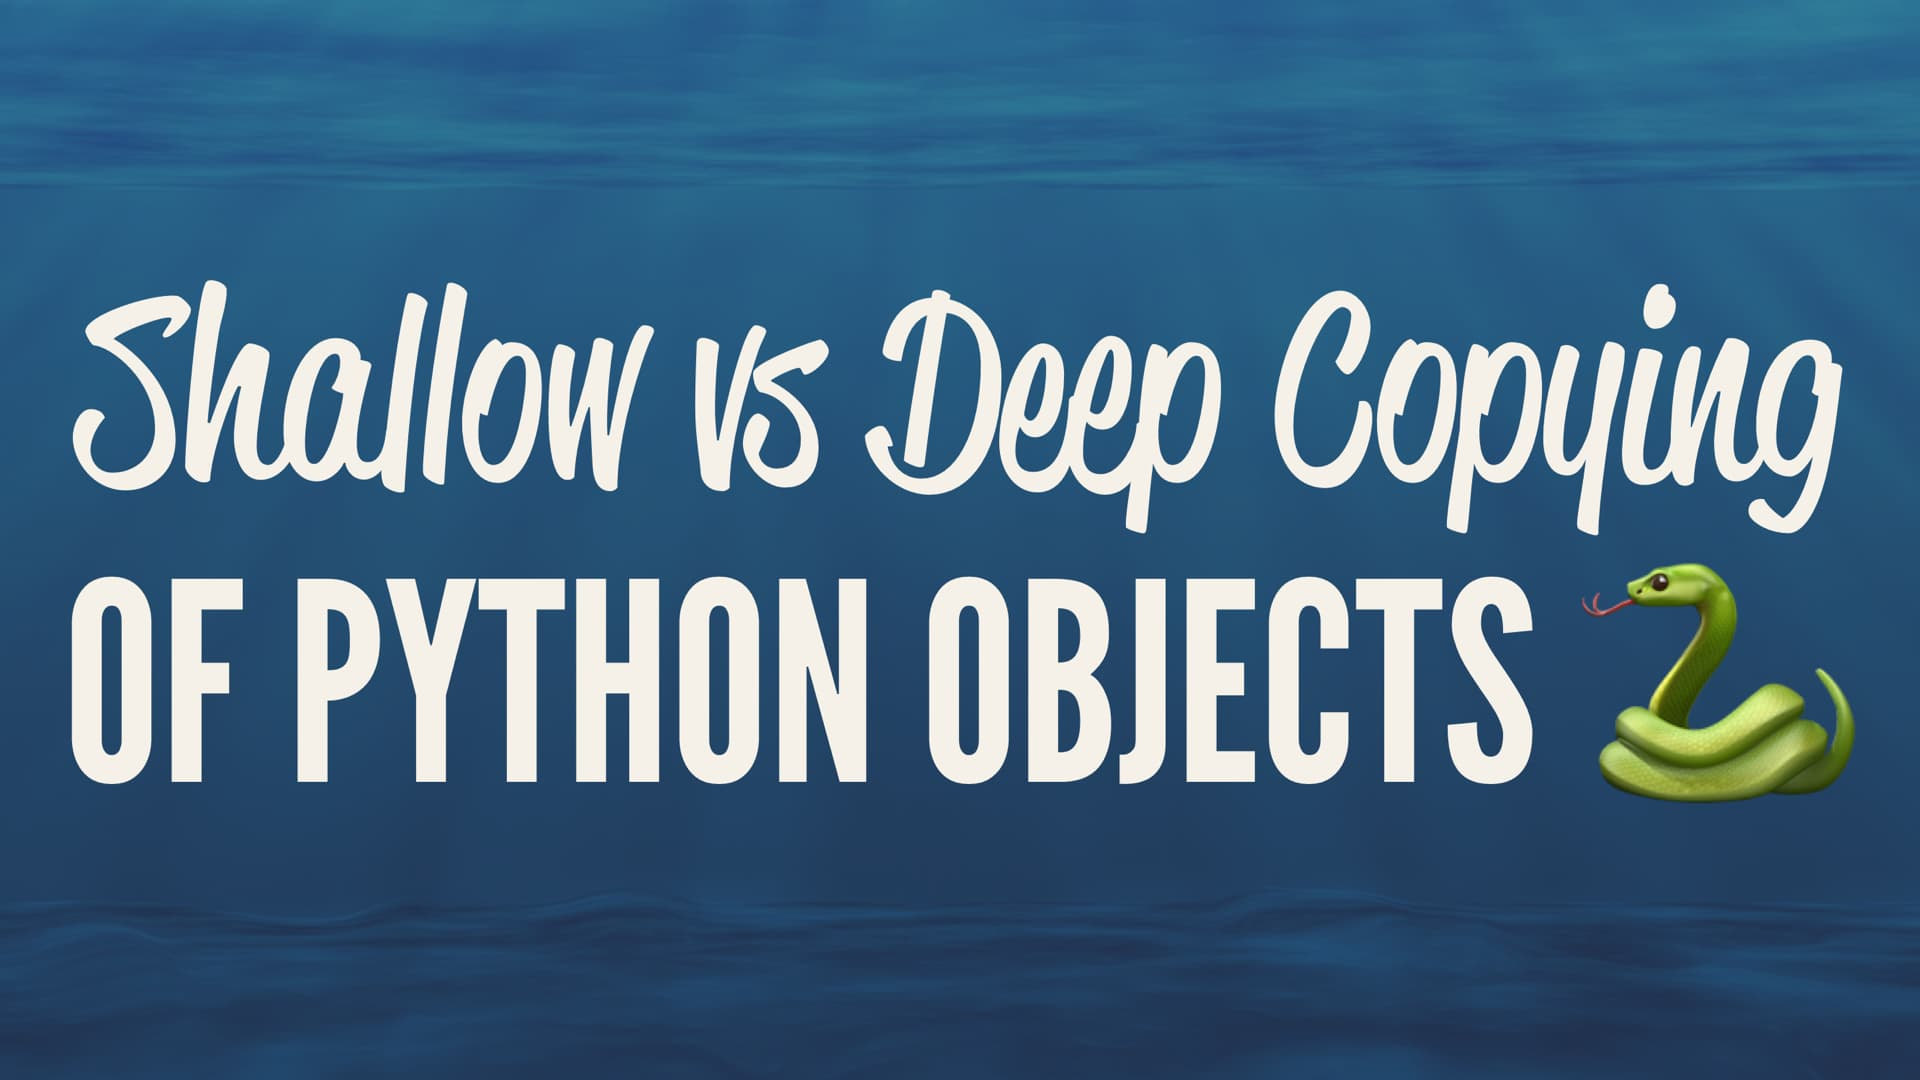 Libros Python Shallow Vs Deep Copying Of Python Objects Real Python